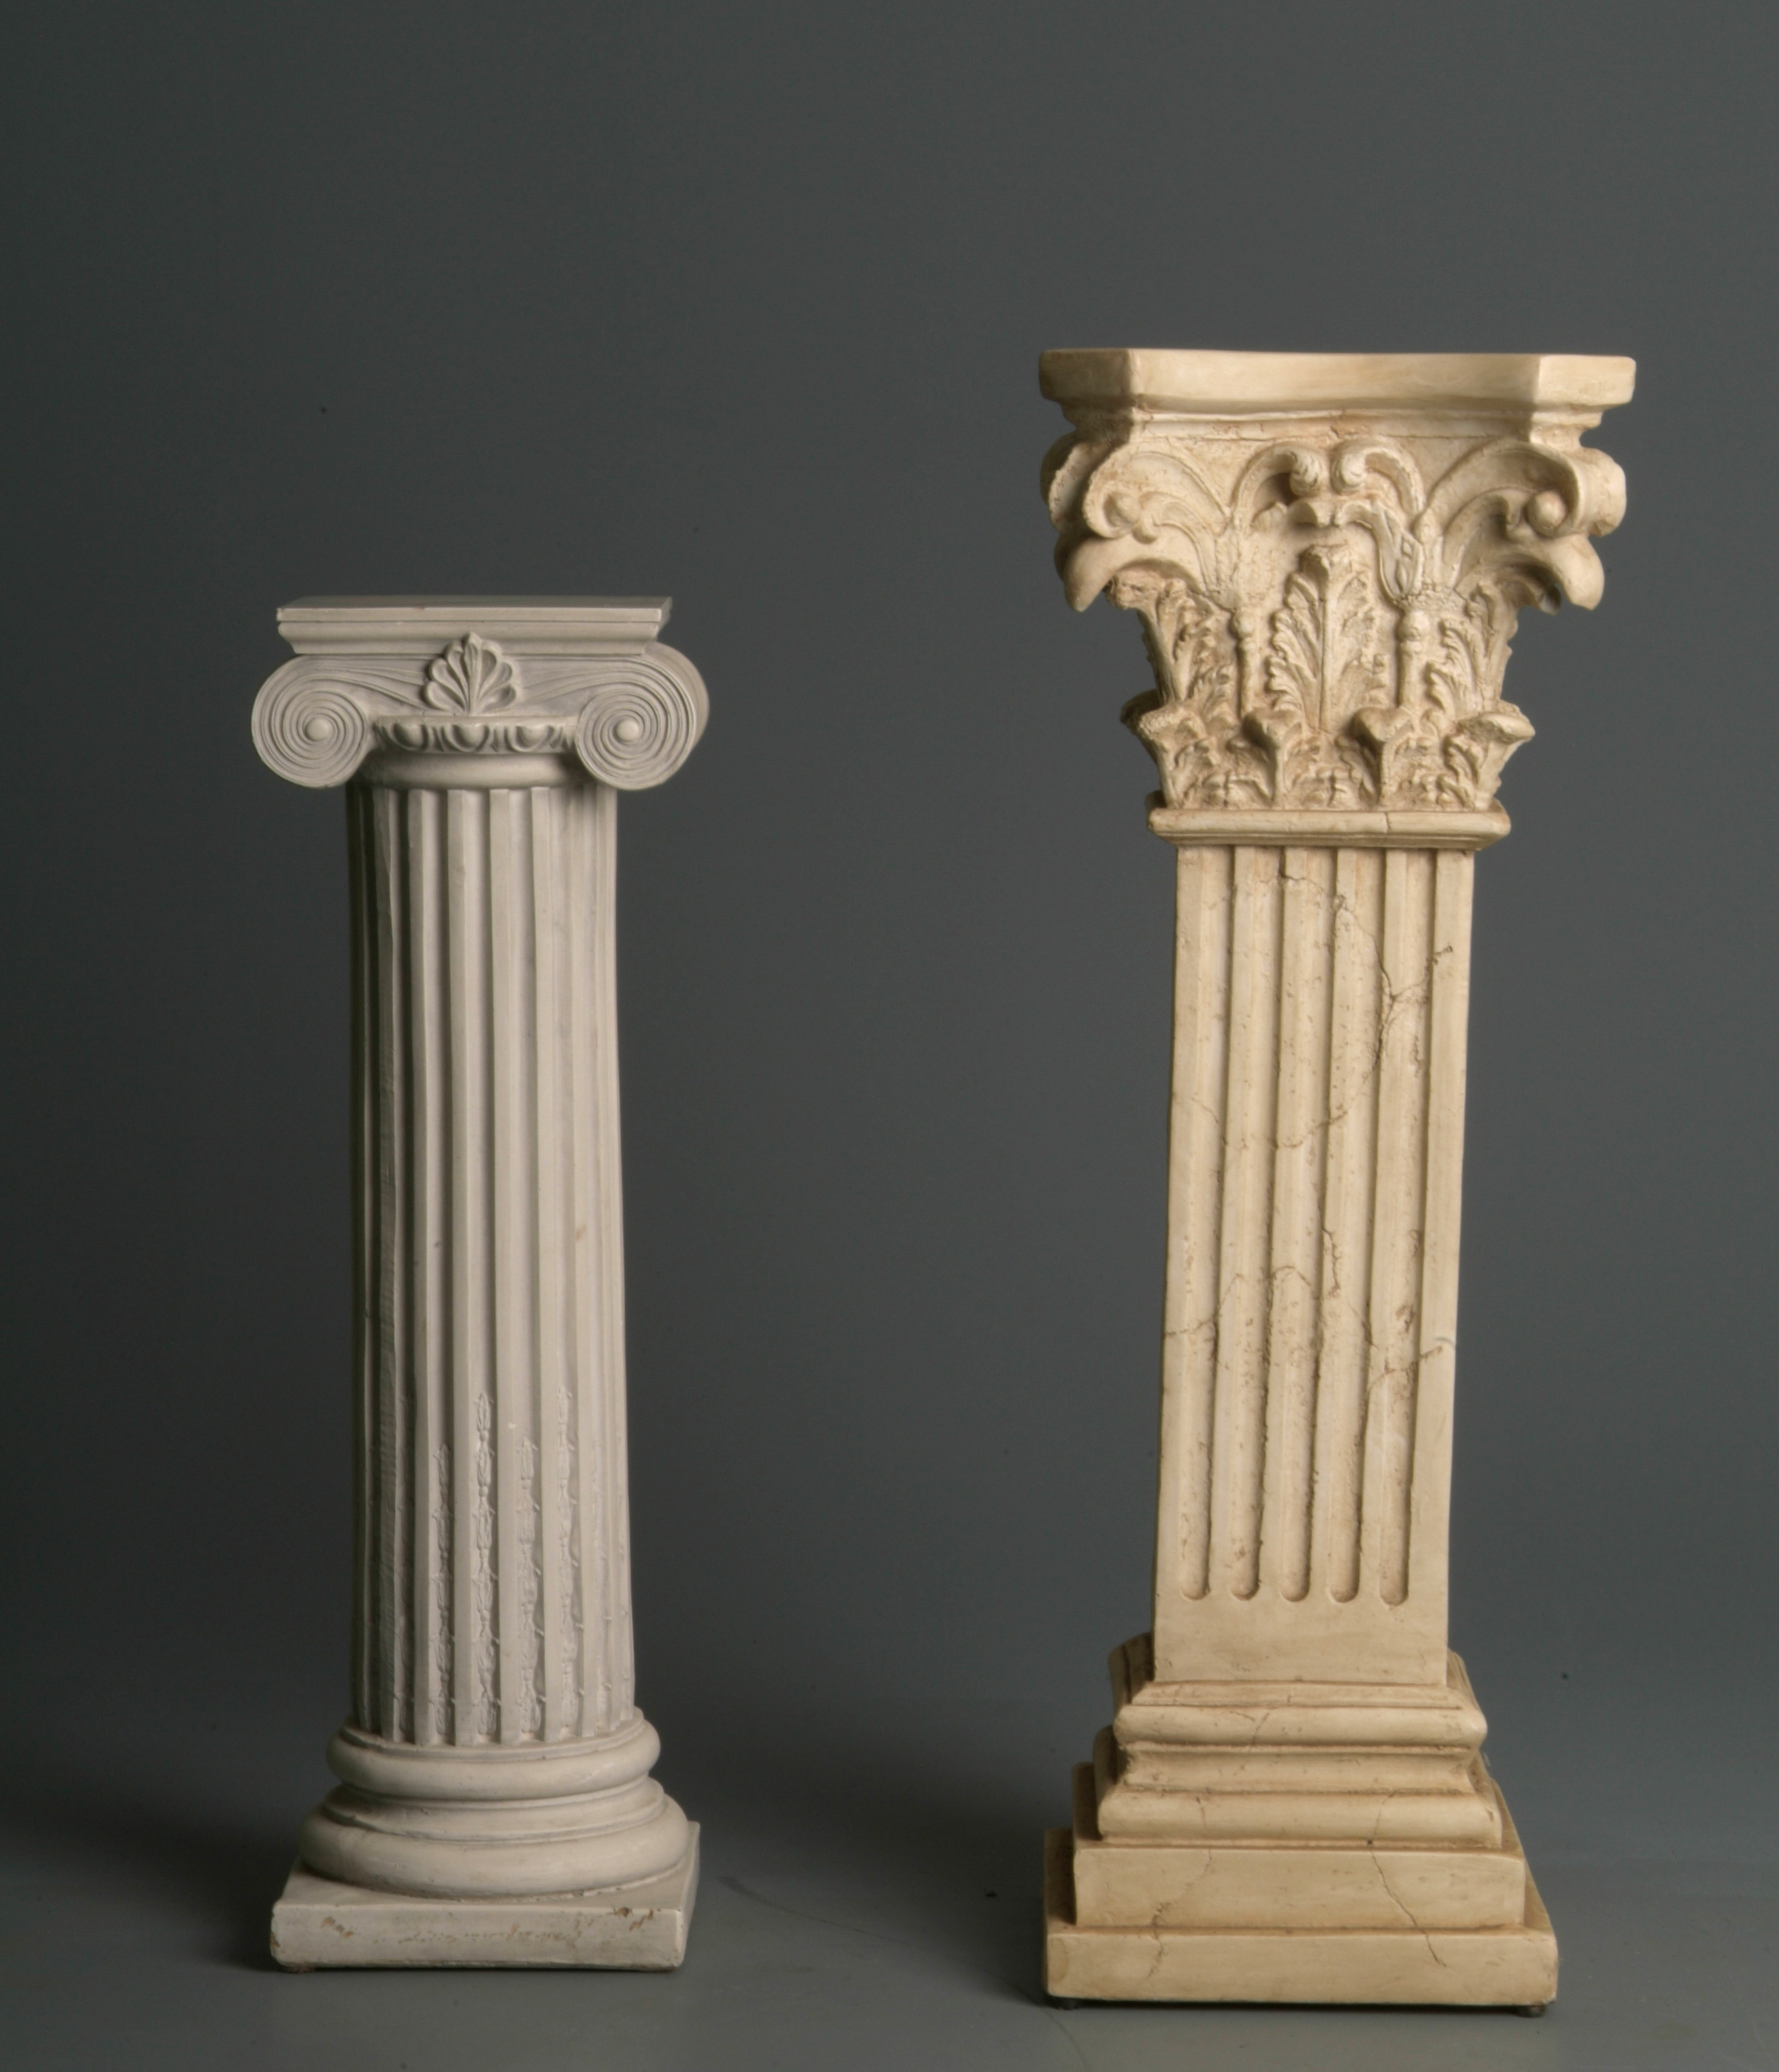 pedestals by mjranum-stock